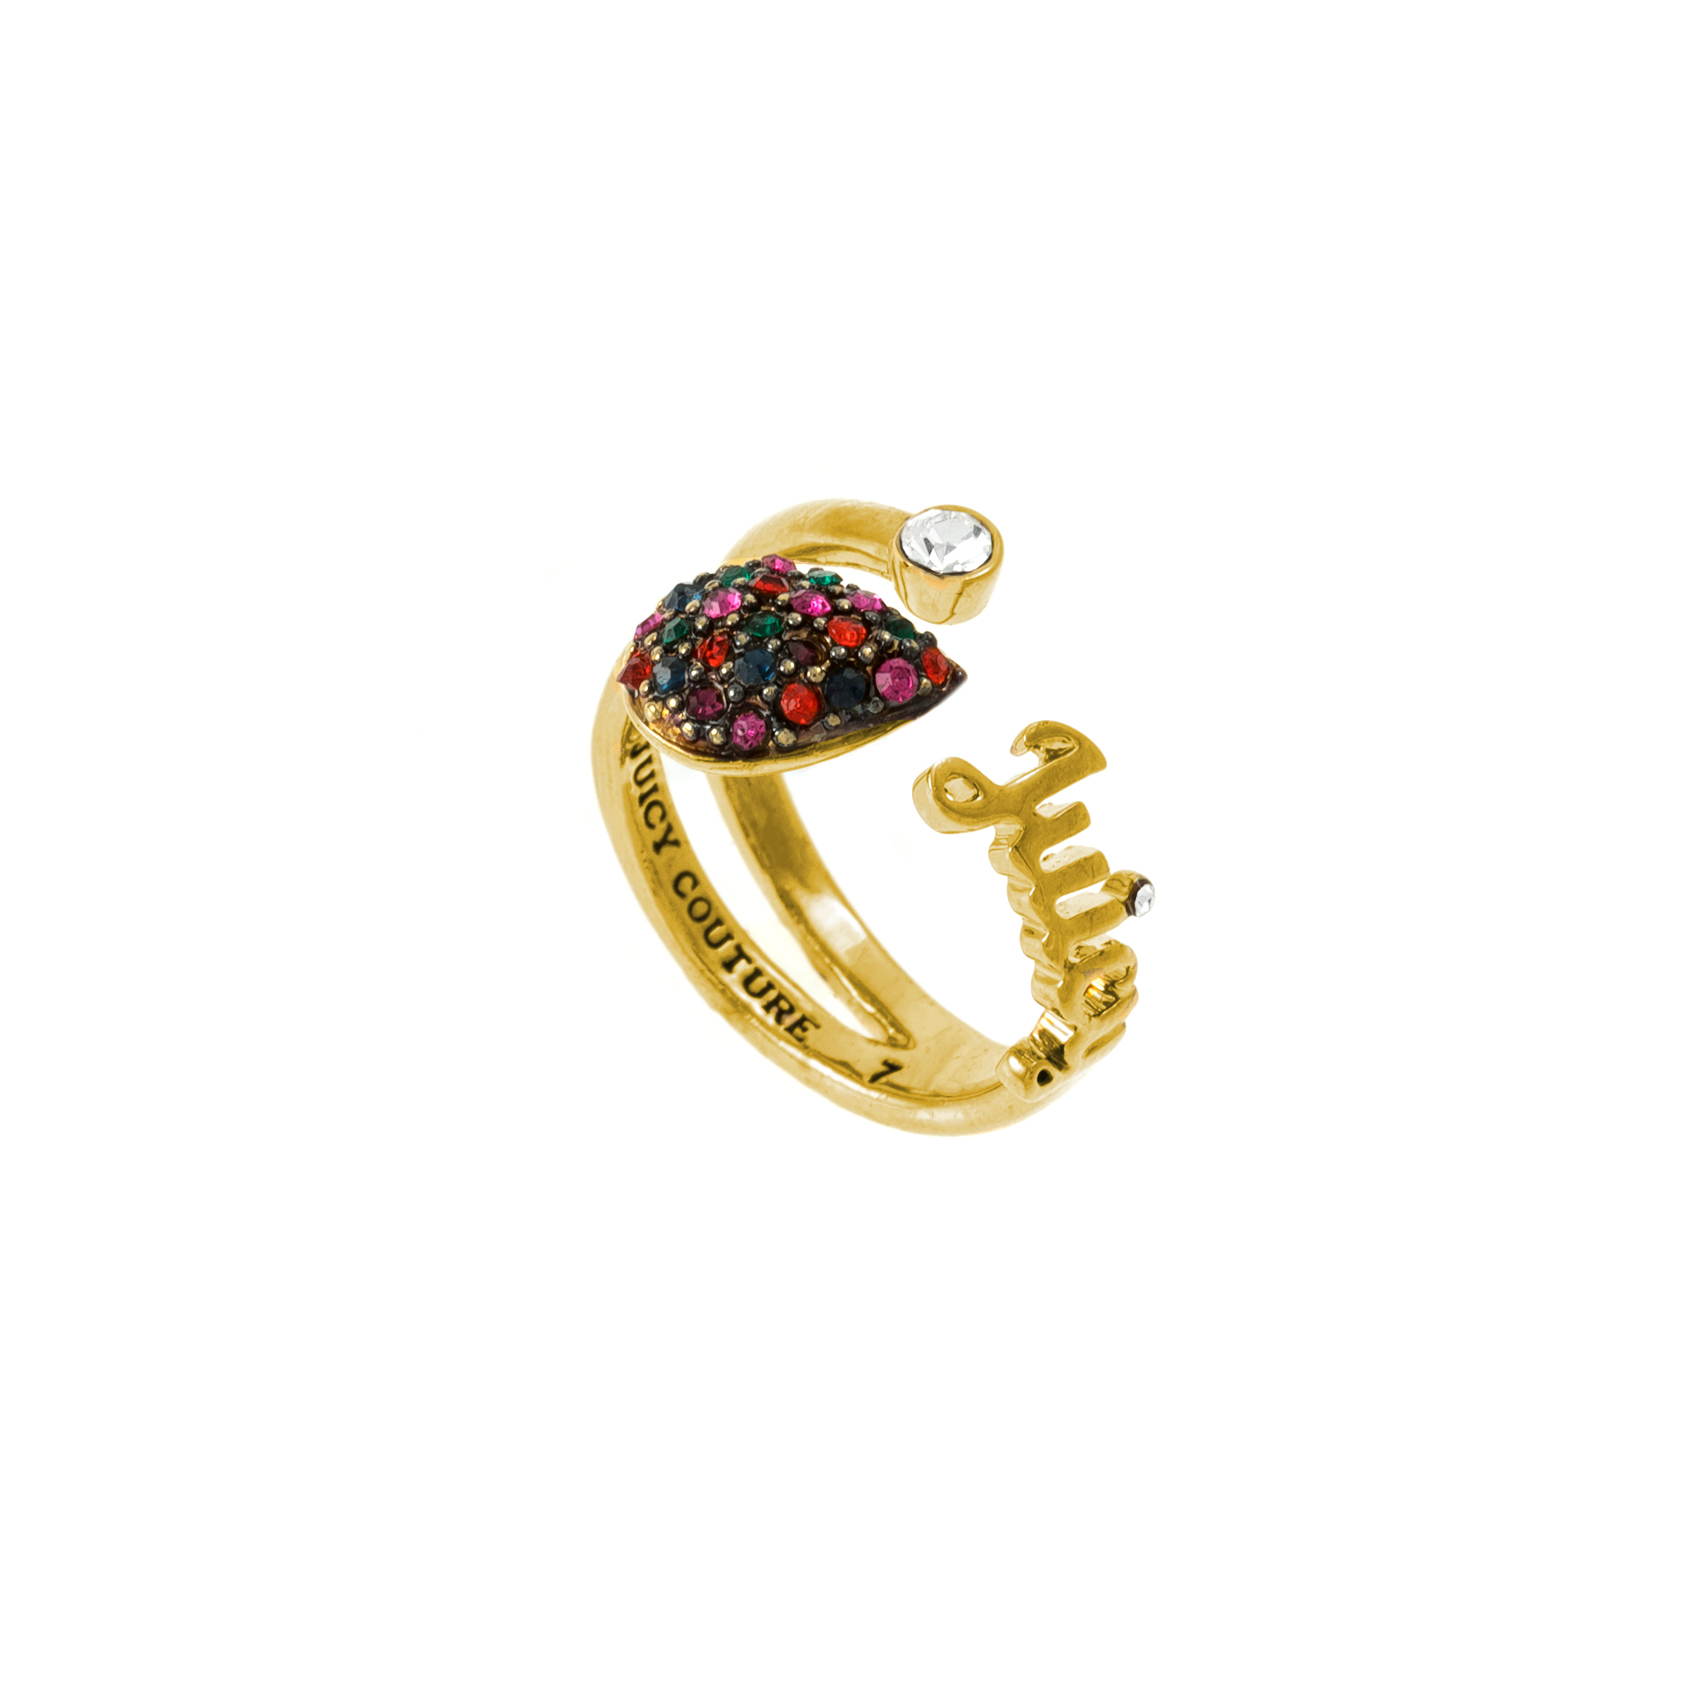 JUICY COUTURE – Δαχτυλίδι GYPSET RING FACTORY OUTLET